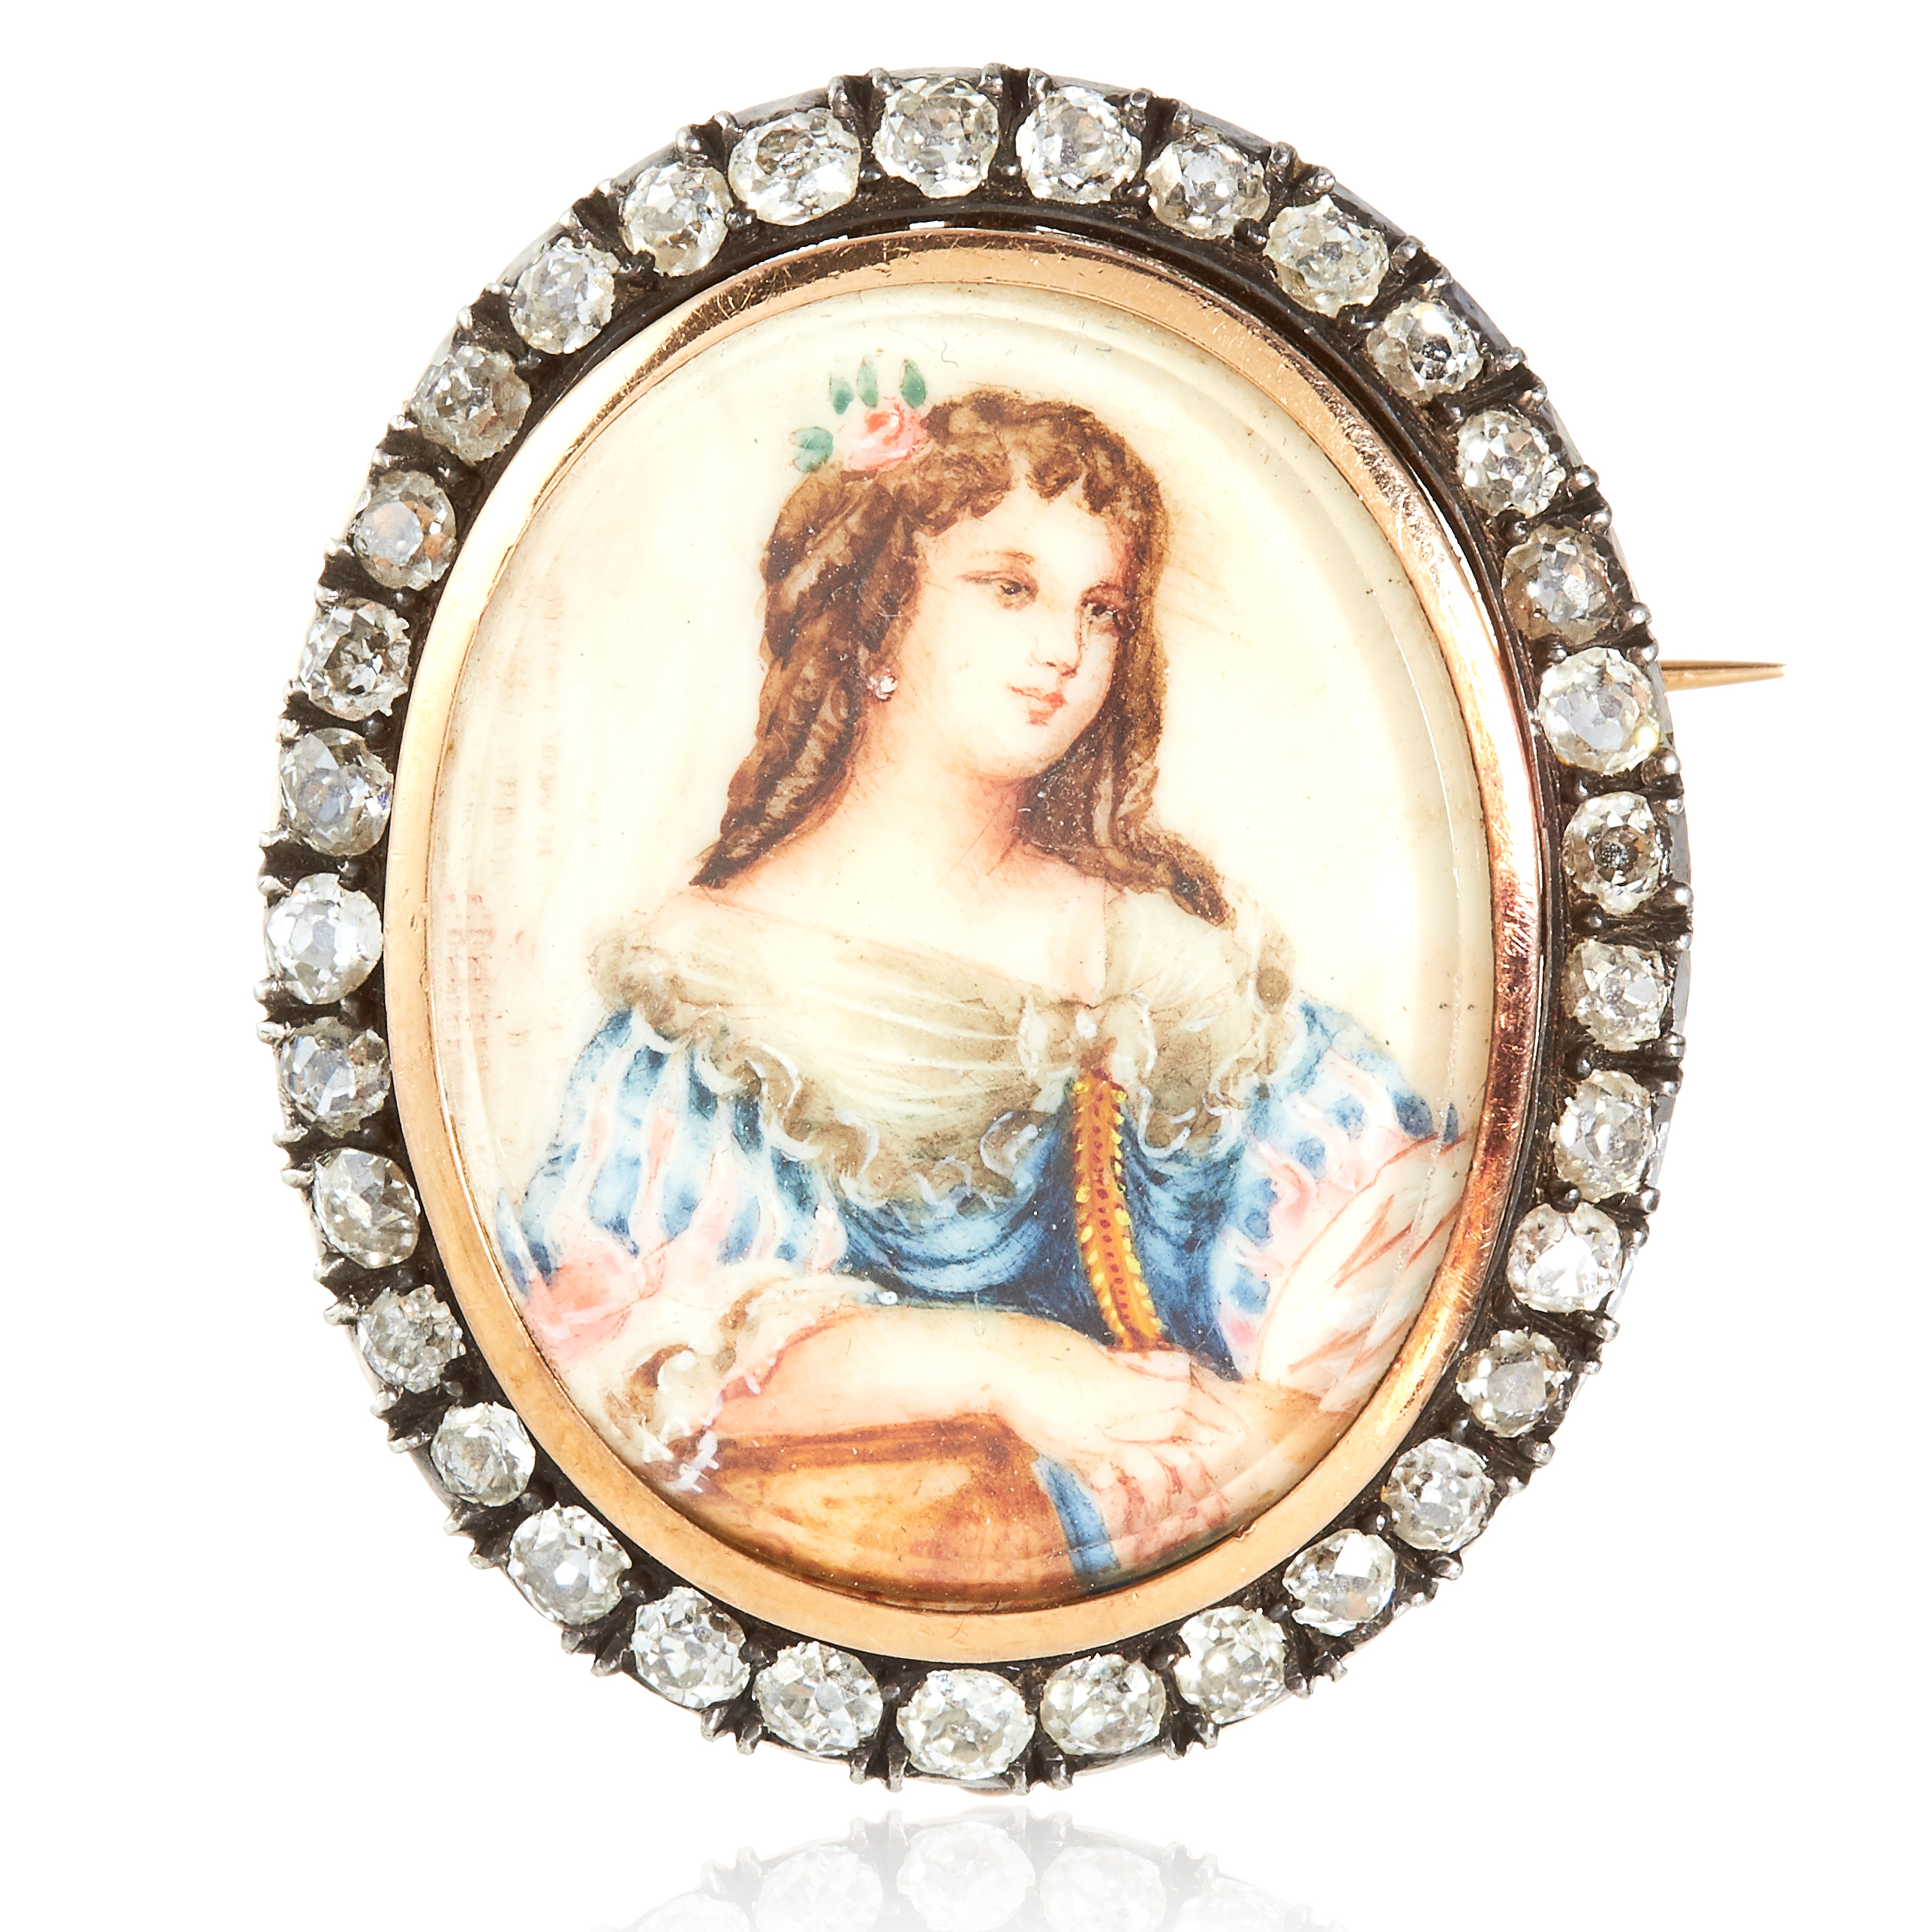 AN ANTIQUE PAINTED ENAMEL AND DIAMOND PORTRAIT BROOCH, 19TH CENTURY in high carat yellow gold, set